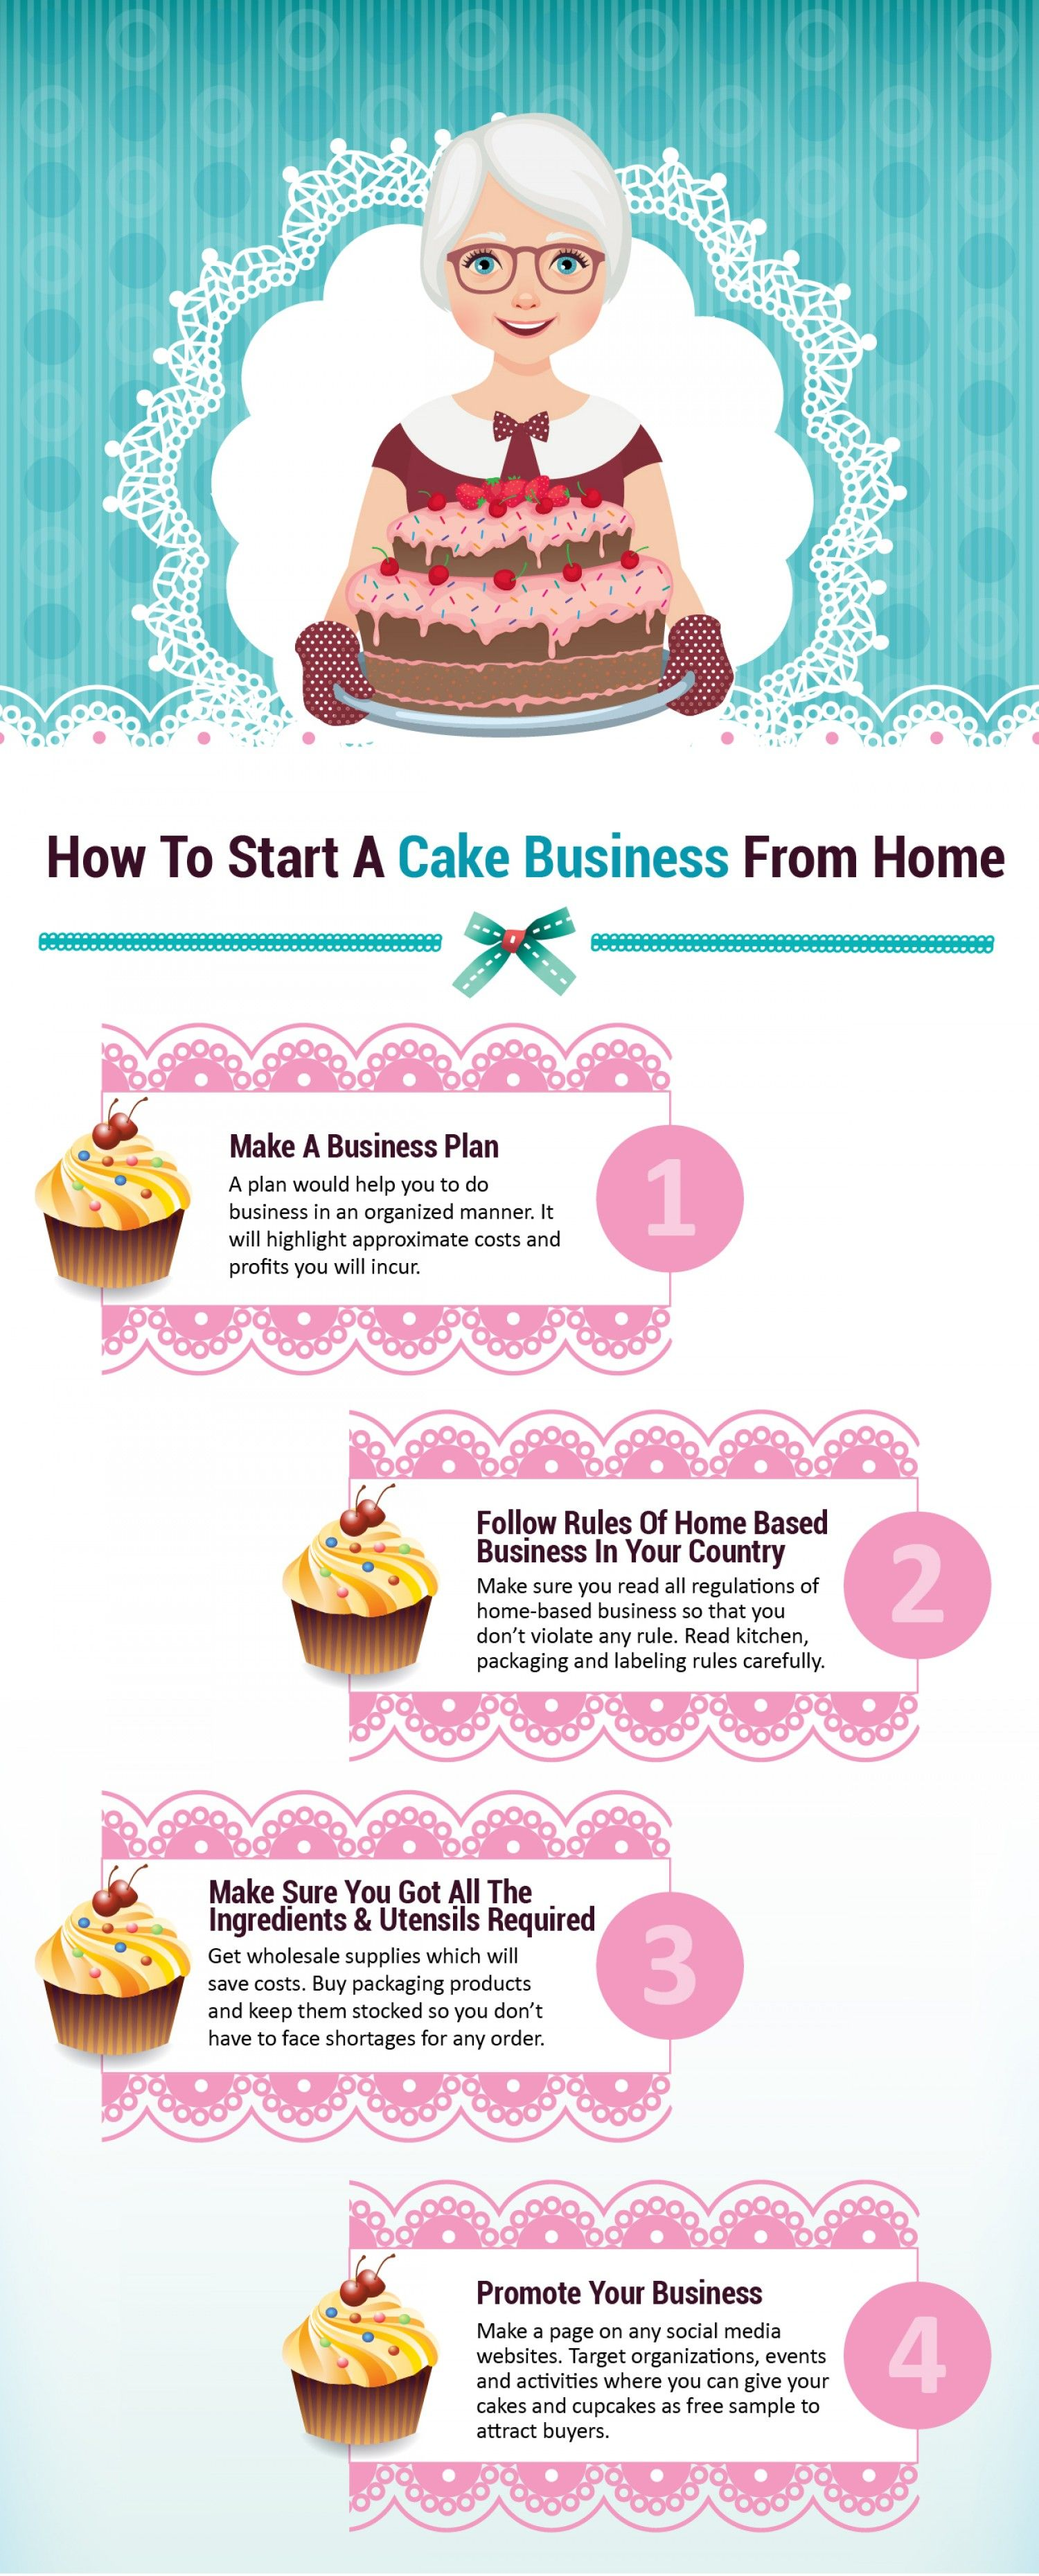 31 Catchy And Cute Cake And Cupcake Business Names Biz